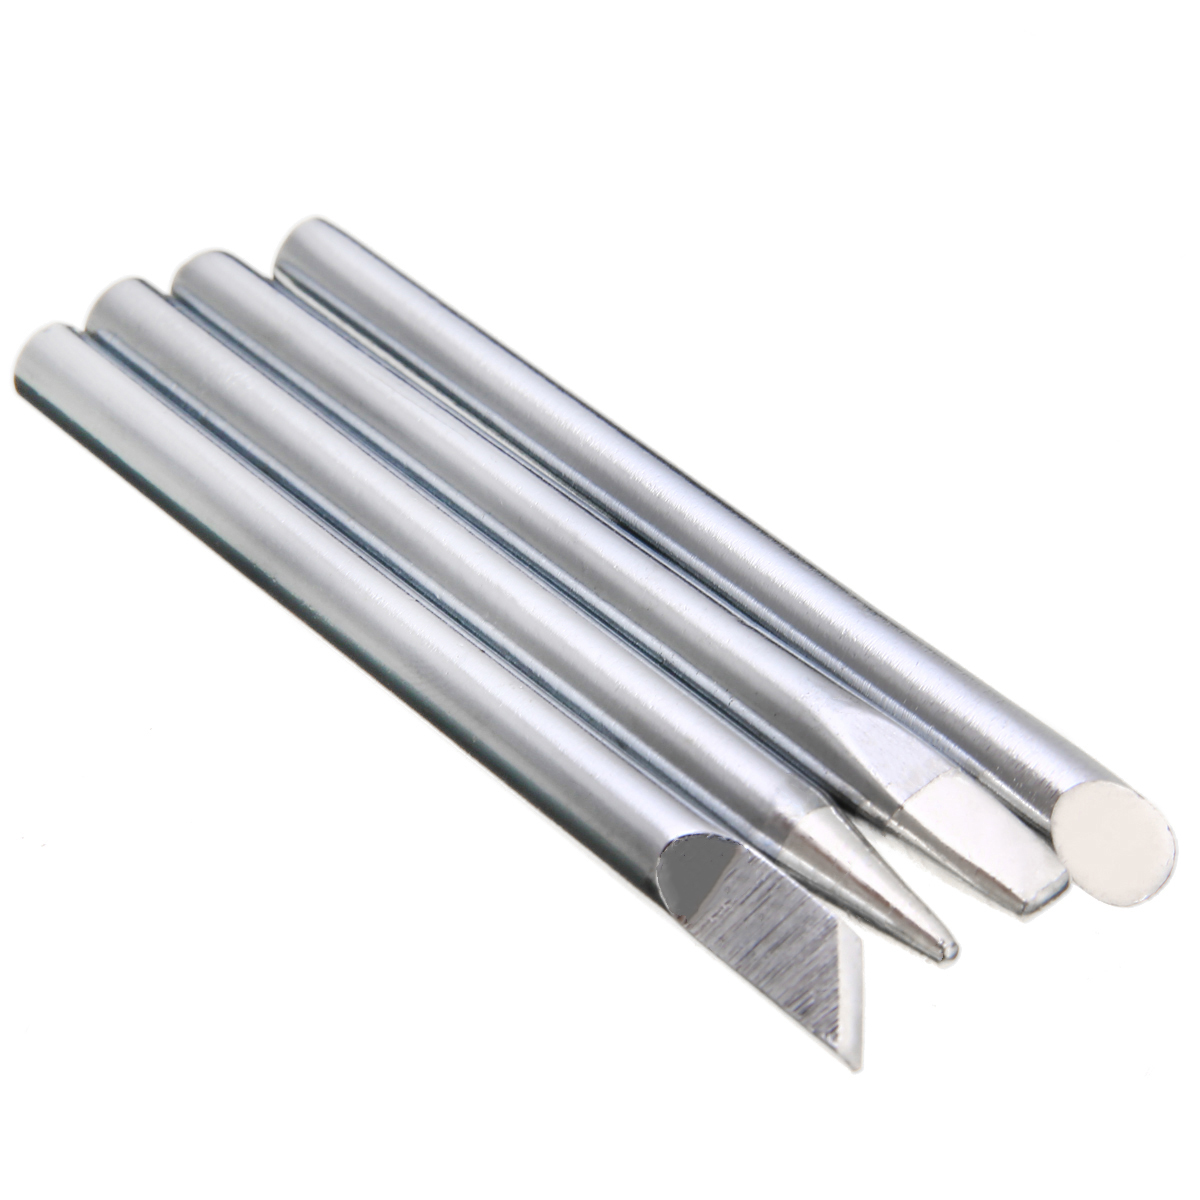 4Pcs/Set 60W Power Copper Soldering Iron Tip Head Replacement 5.5mm Shank For Electric Welding Solder Iron Head Tool